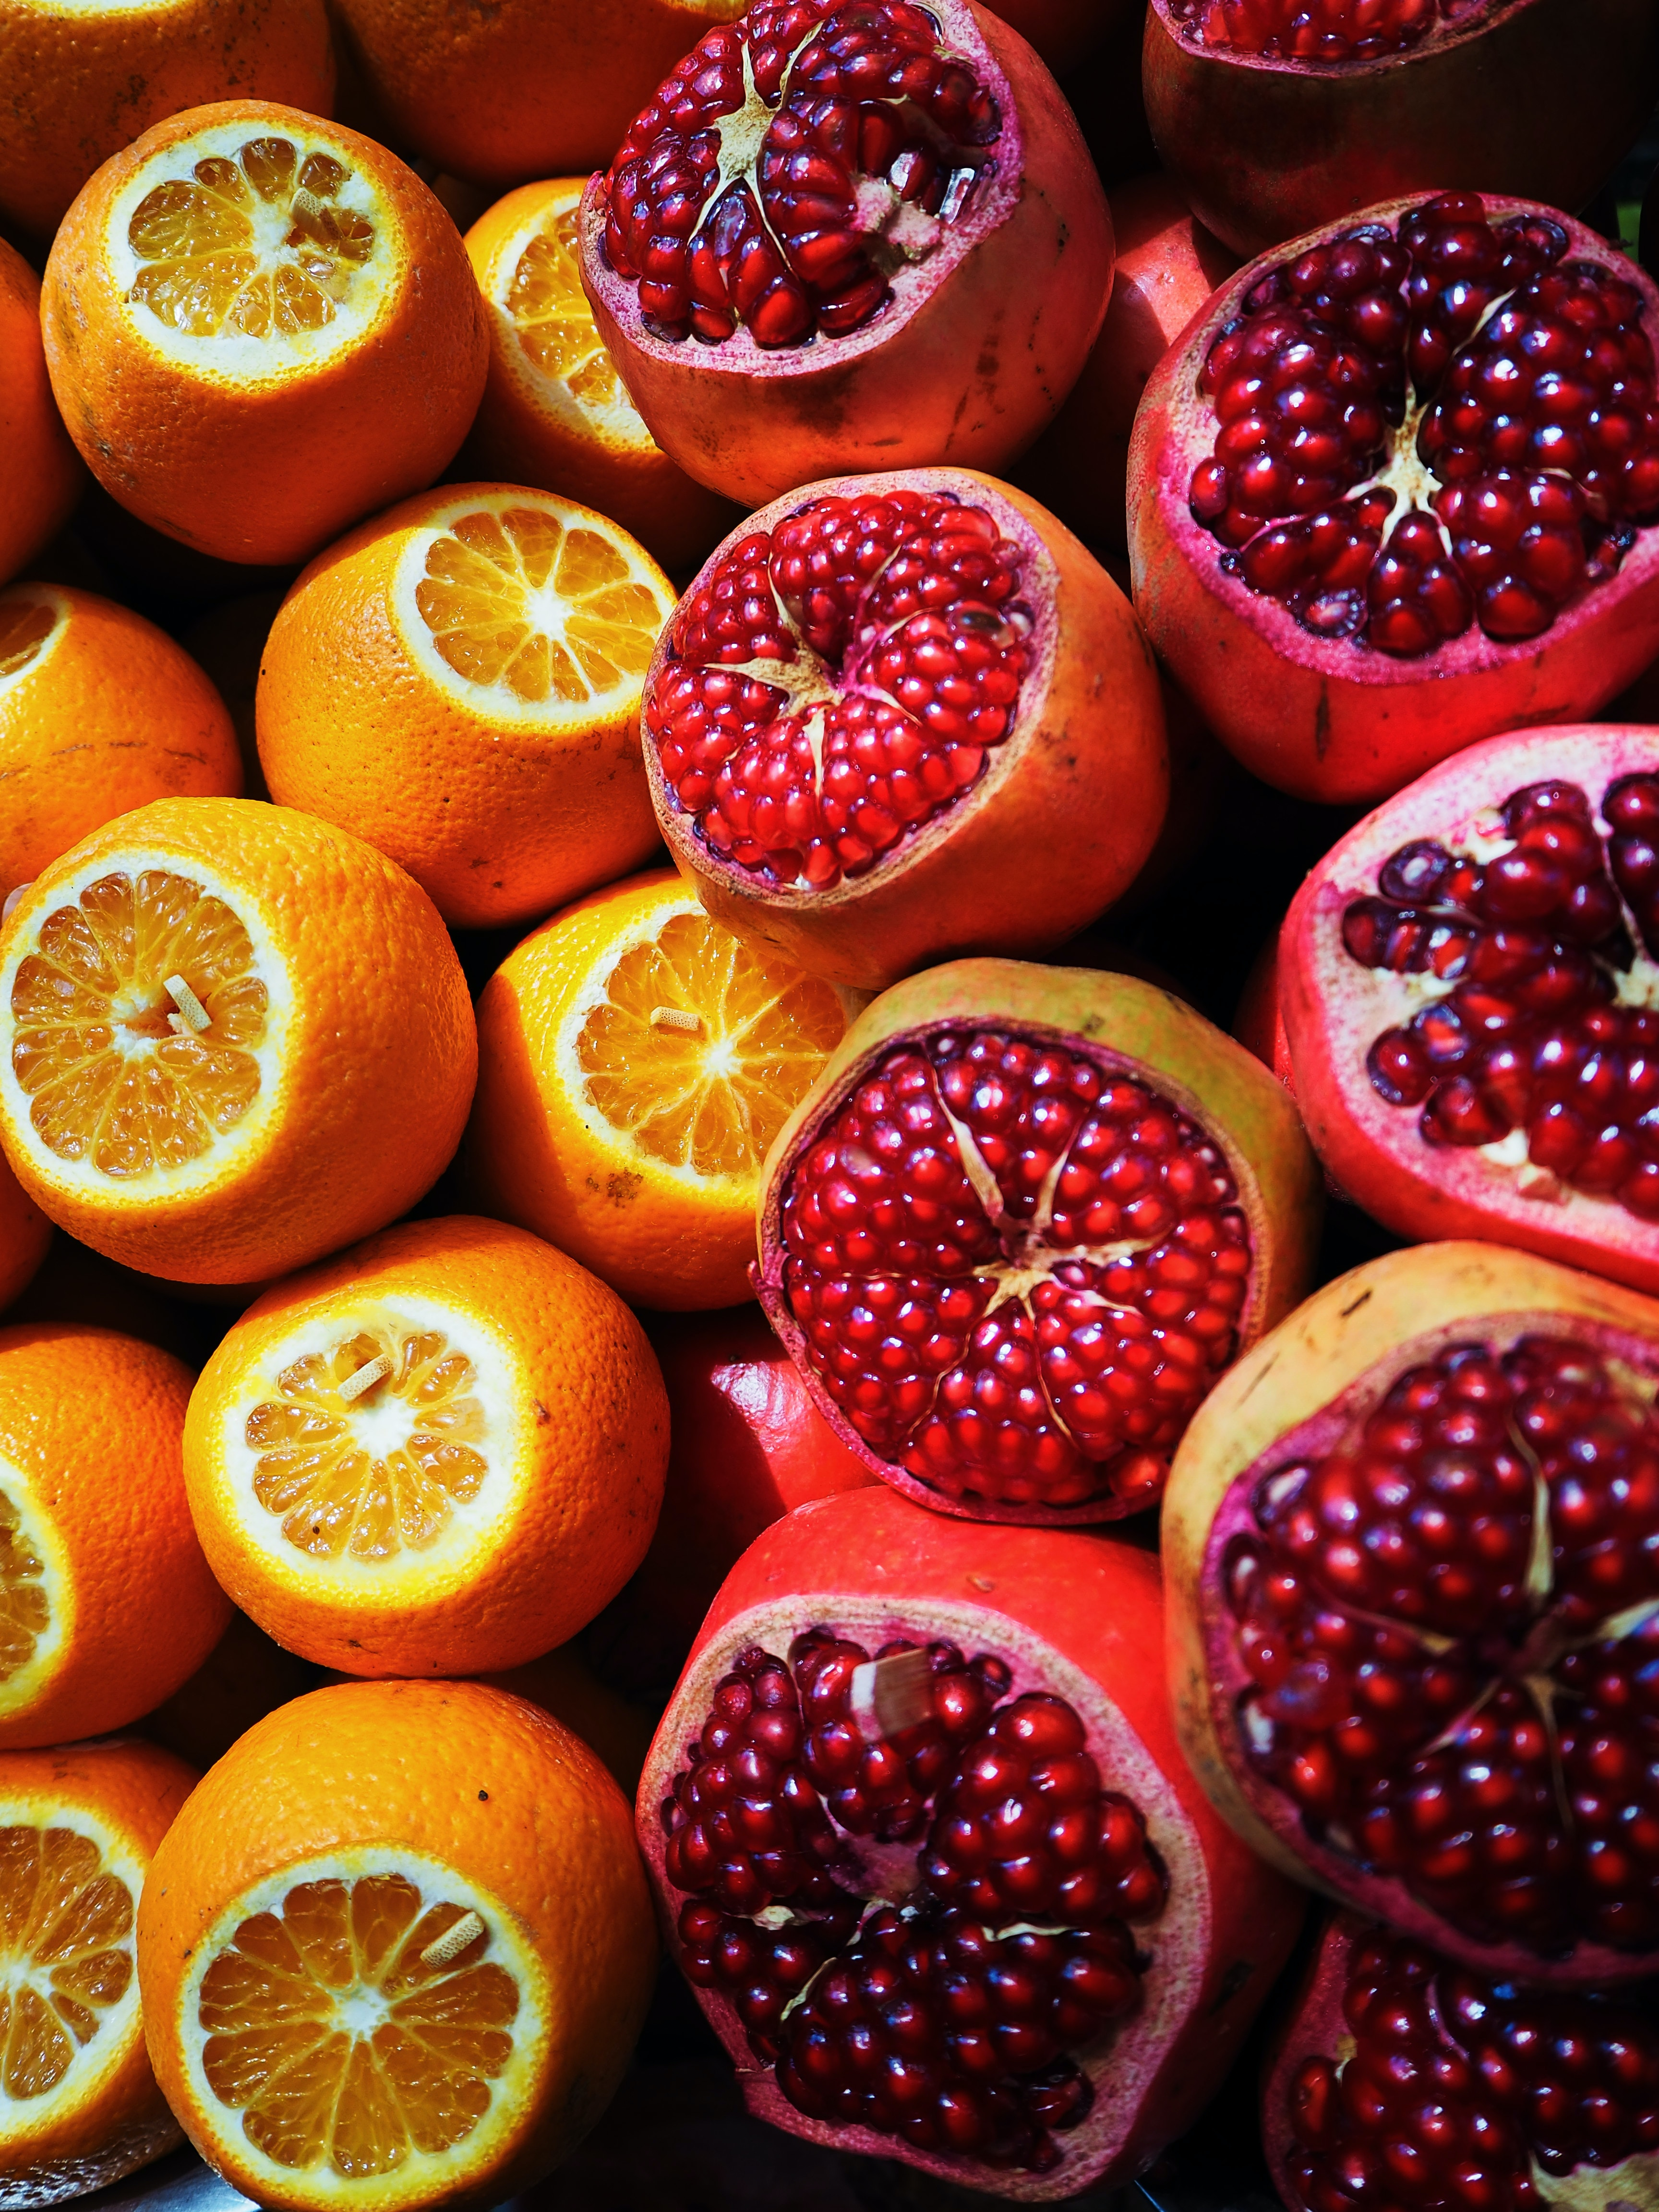 sliced orange and pomegranate fruits